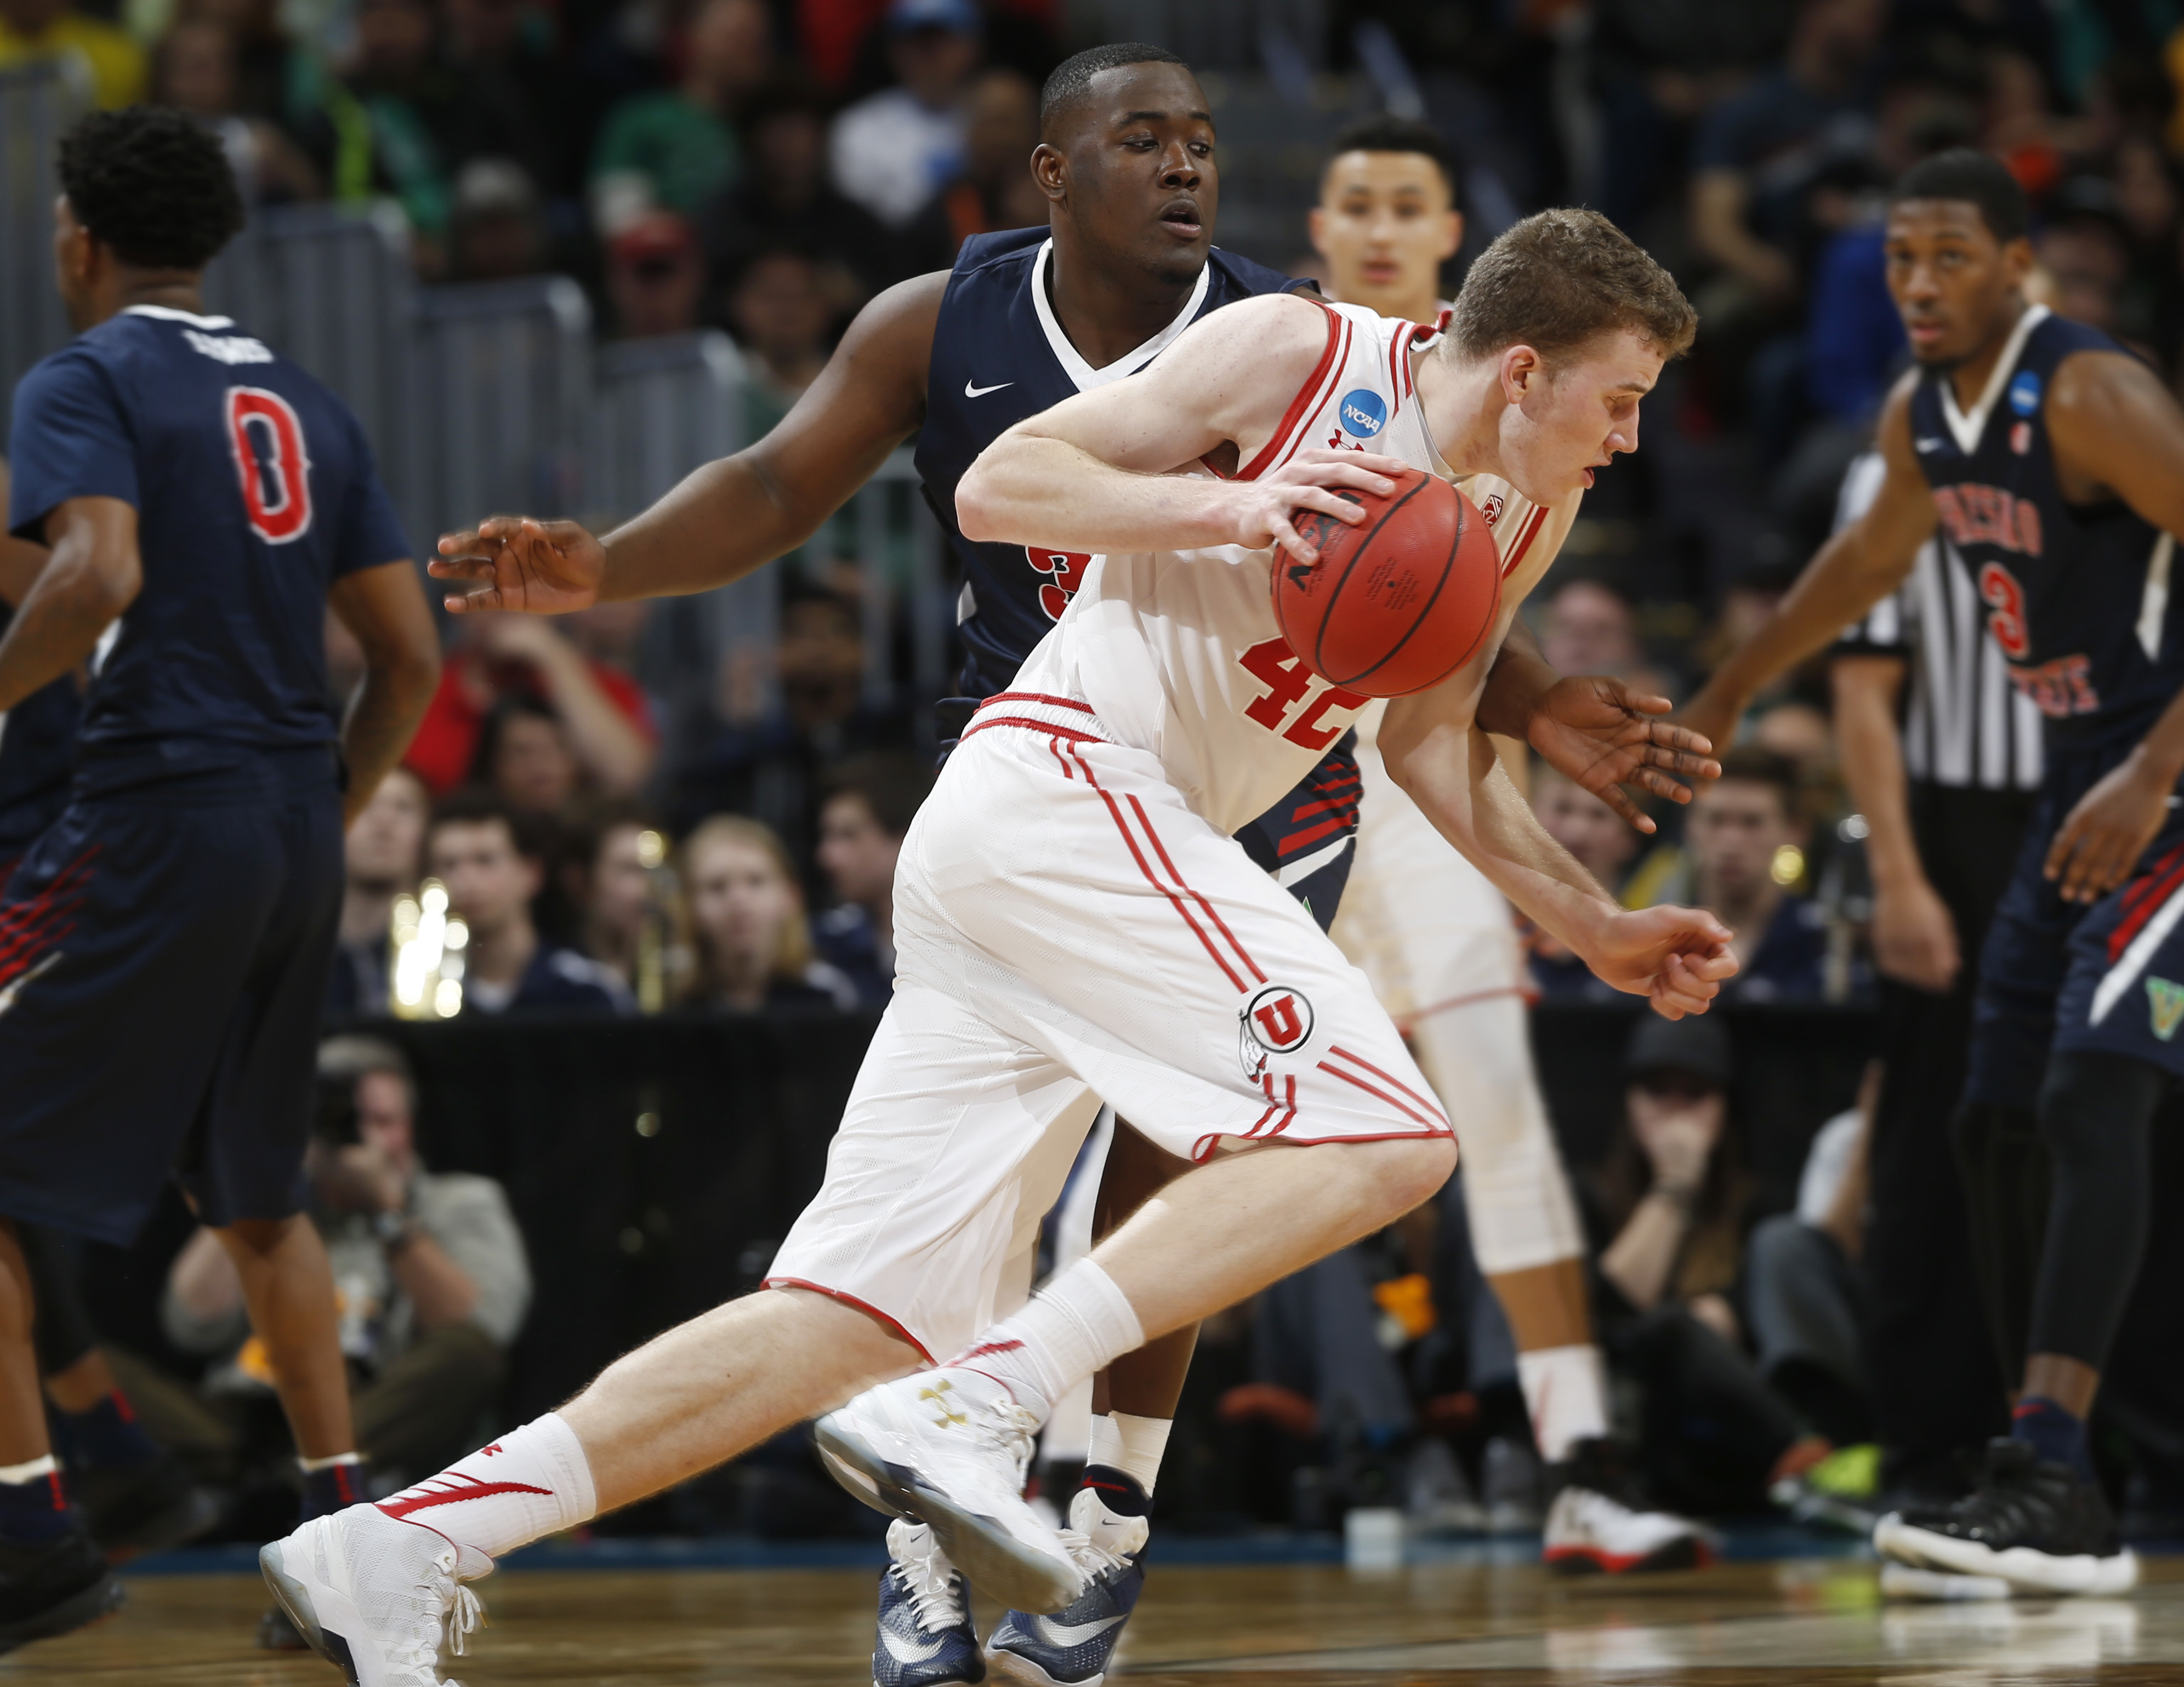 Utah forward Jakob Poeltl, front, drives past Fresno State center Terrell Carter II in the second half of a first-round men's college basketball game Thursday, March 17, 2016, in the NCAA Tournament in Denver. Utah won 80-69. (AP Photo/David Zalubowski)